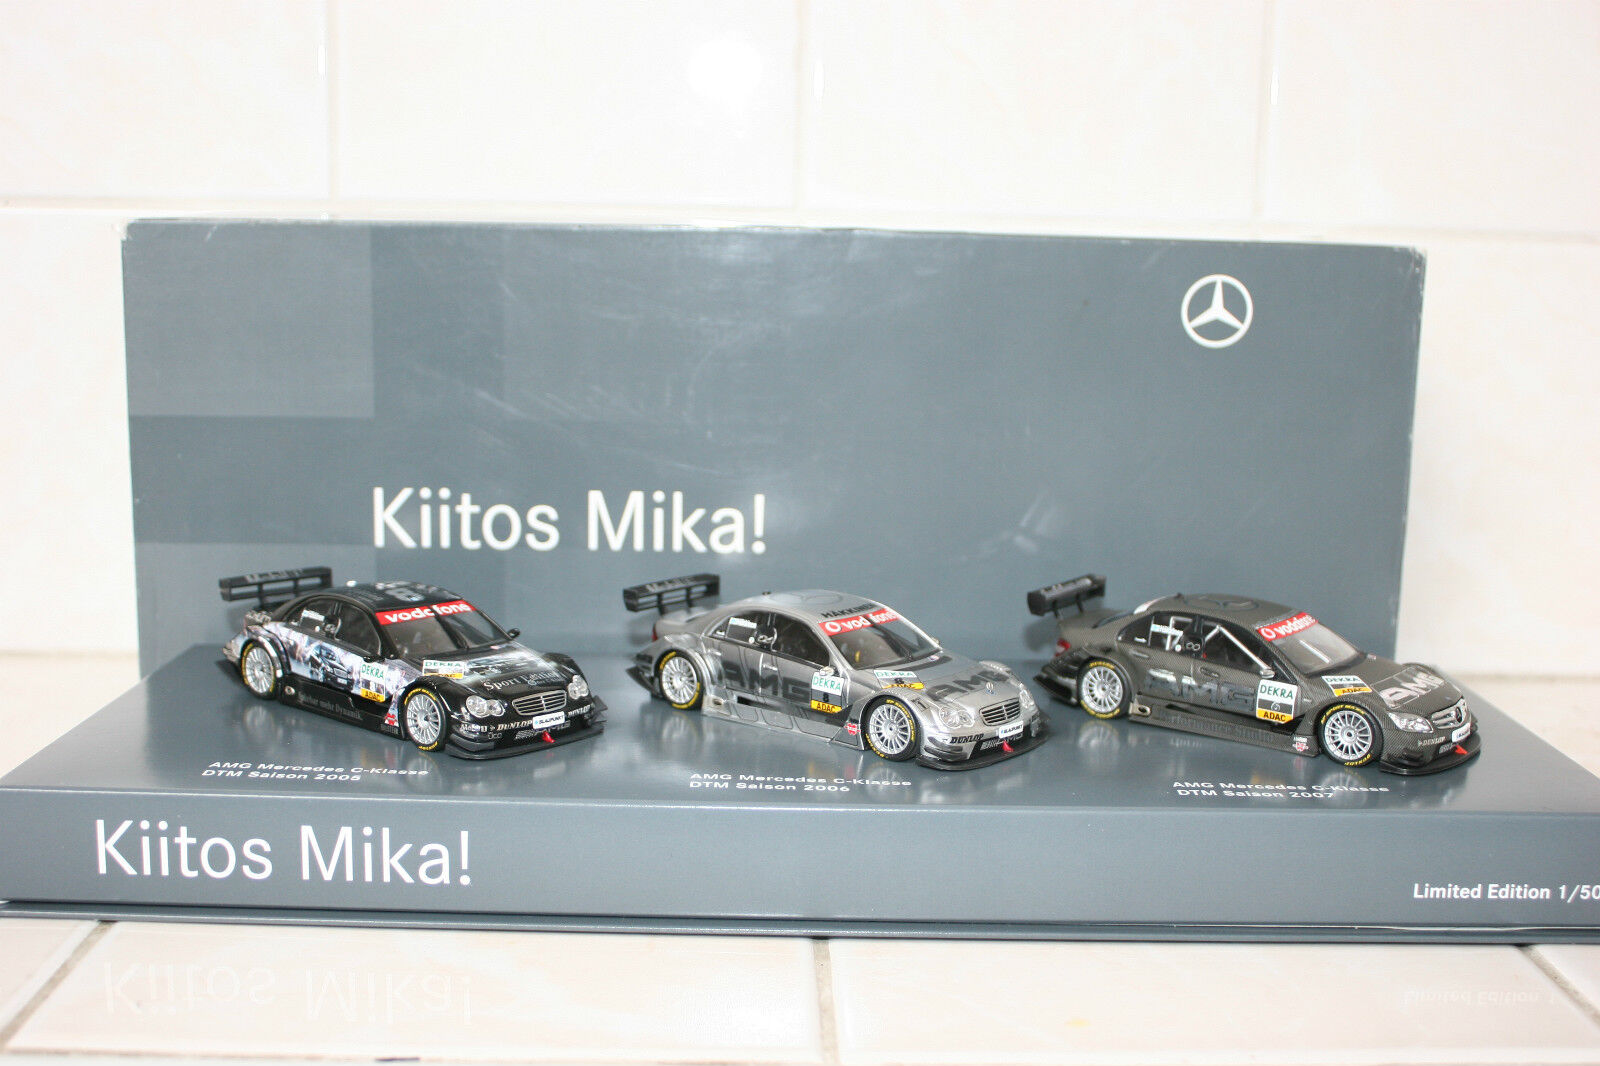 1 43 Minichamps Mercedes Benz Benz Benz C Class DTM W203 w204 Kiitos Mika Set 1 of 50 241b60